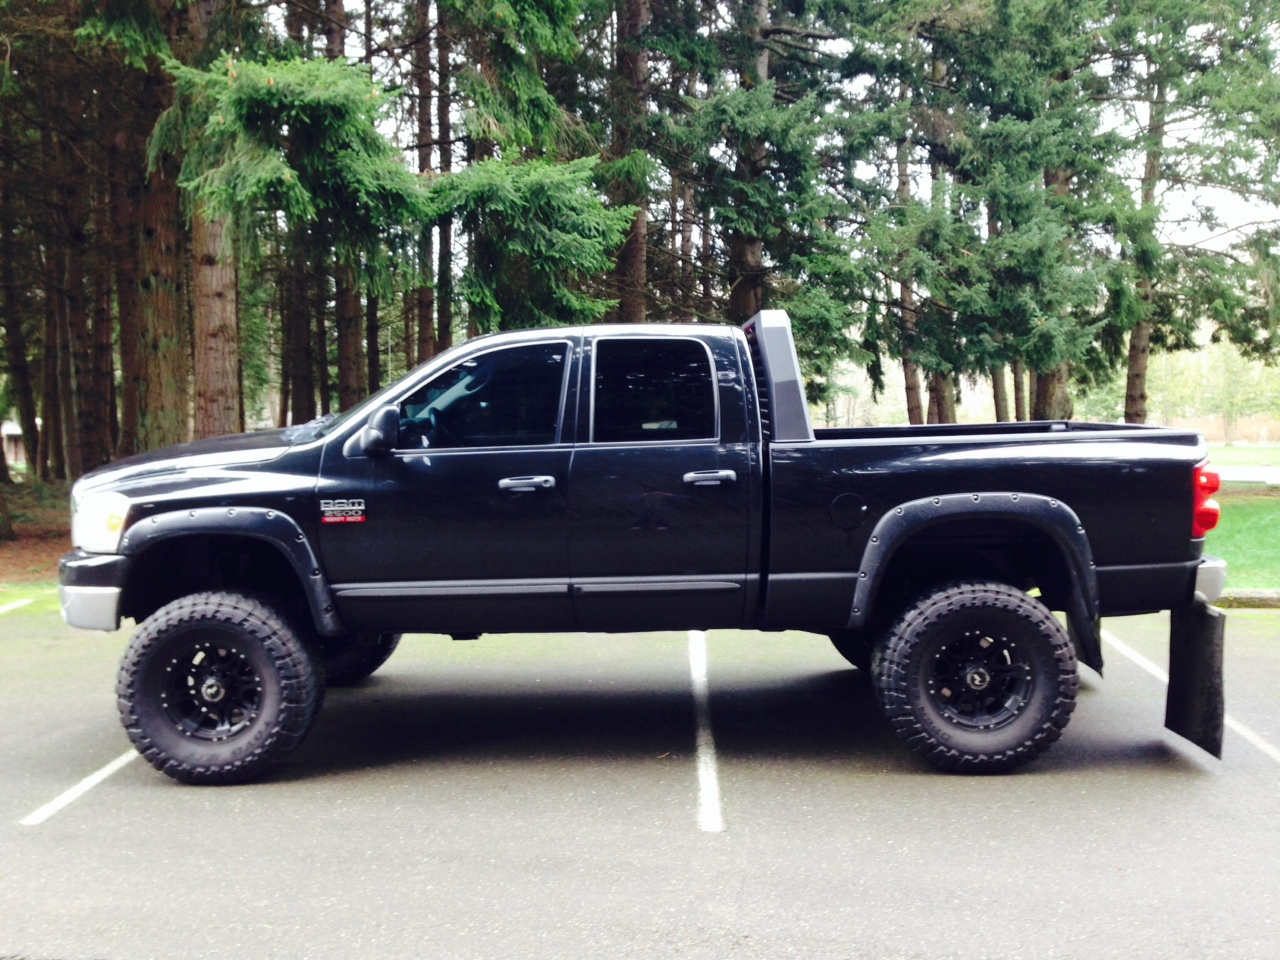 New custom designed Dodge headache rack by Santiam Truck